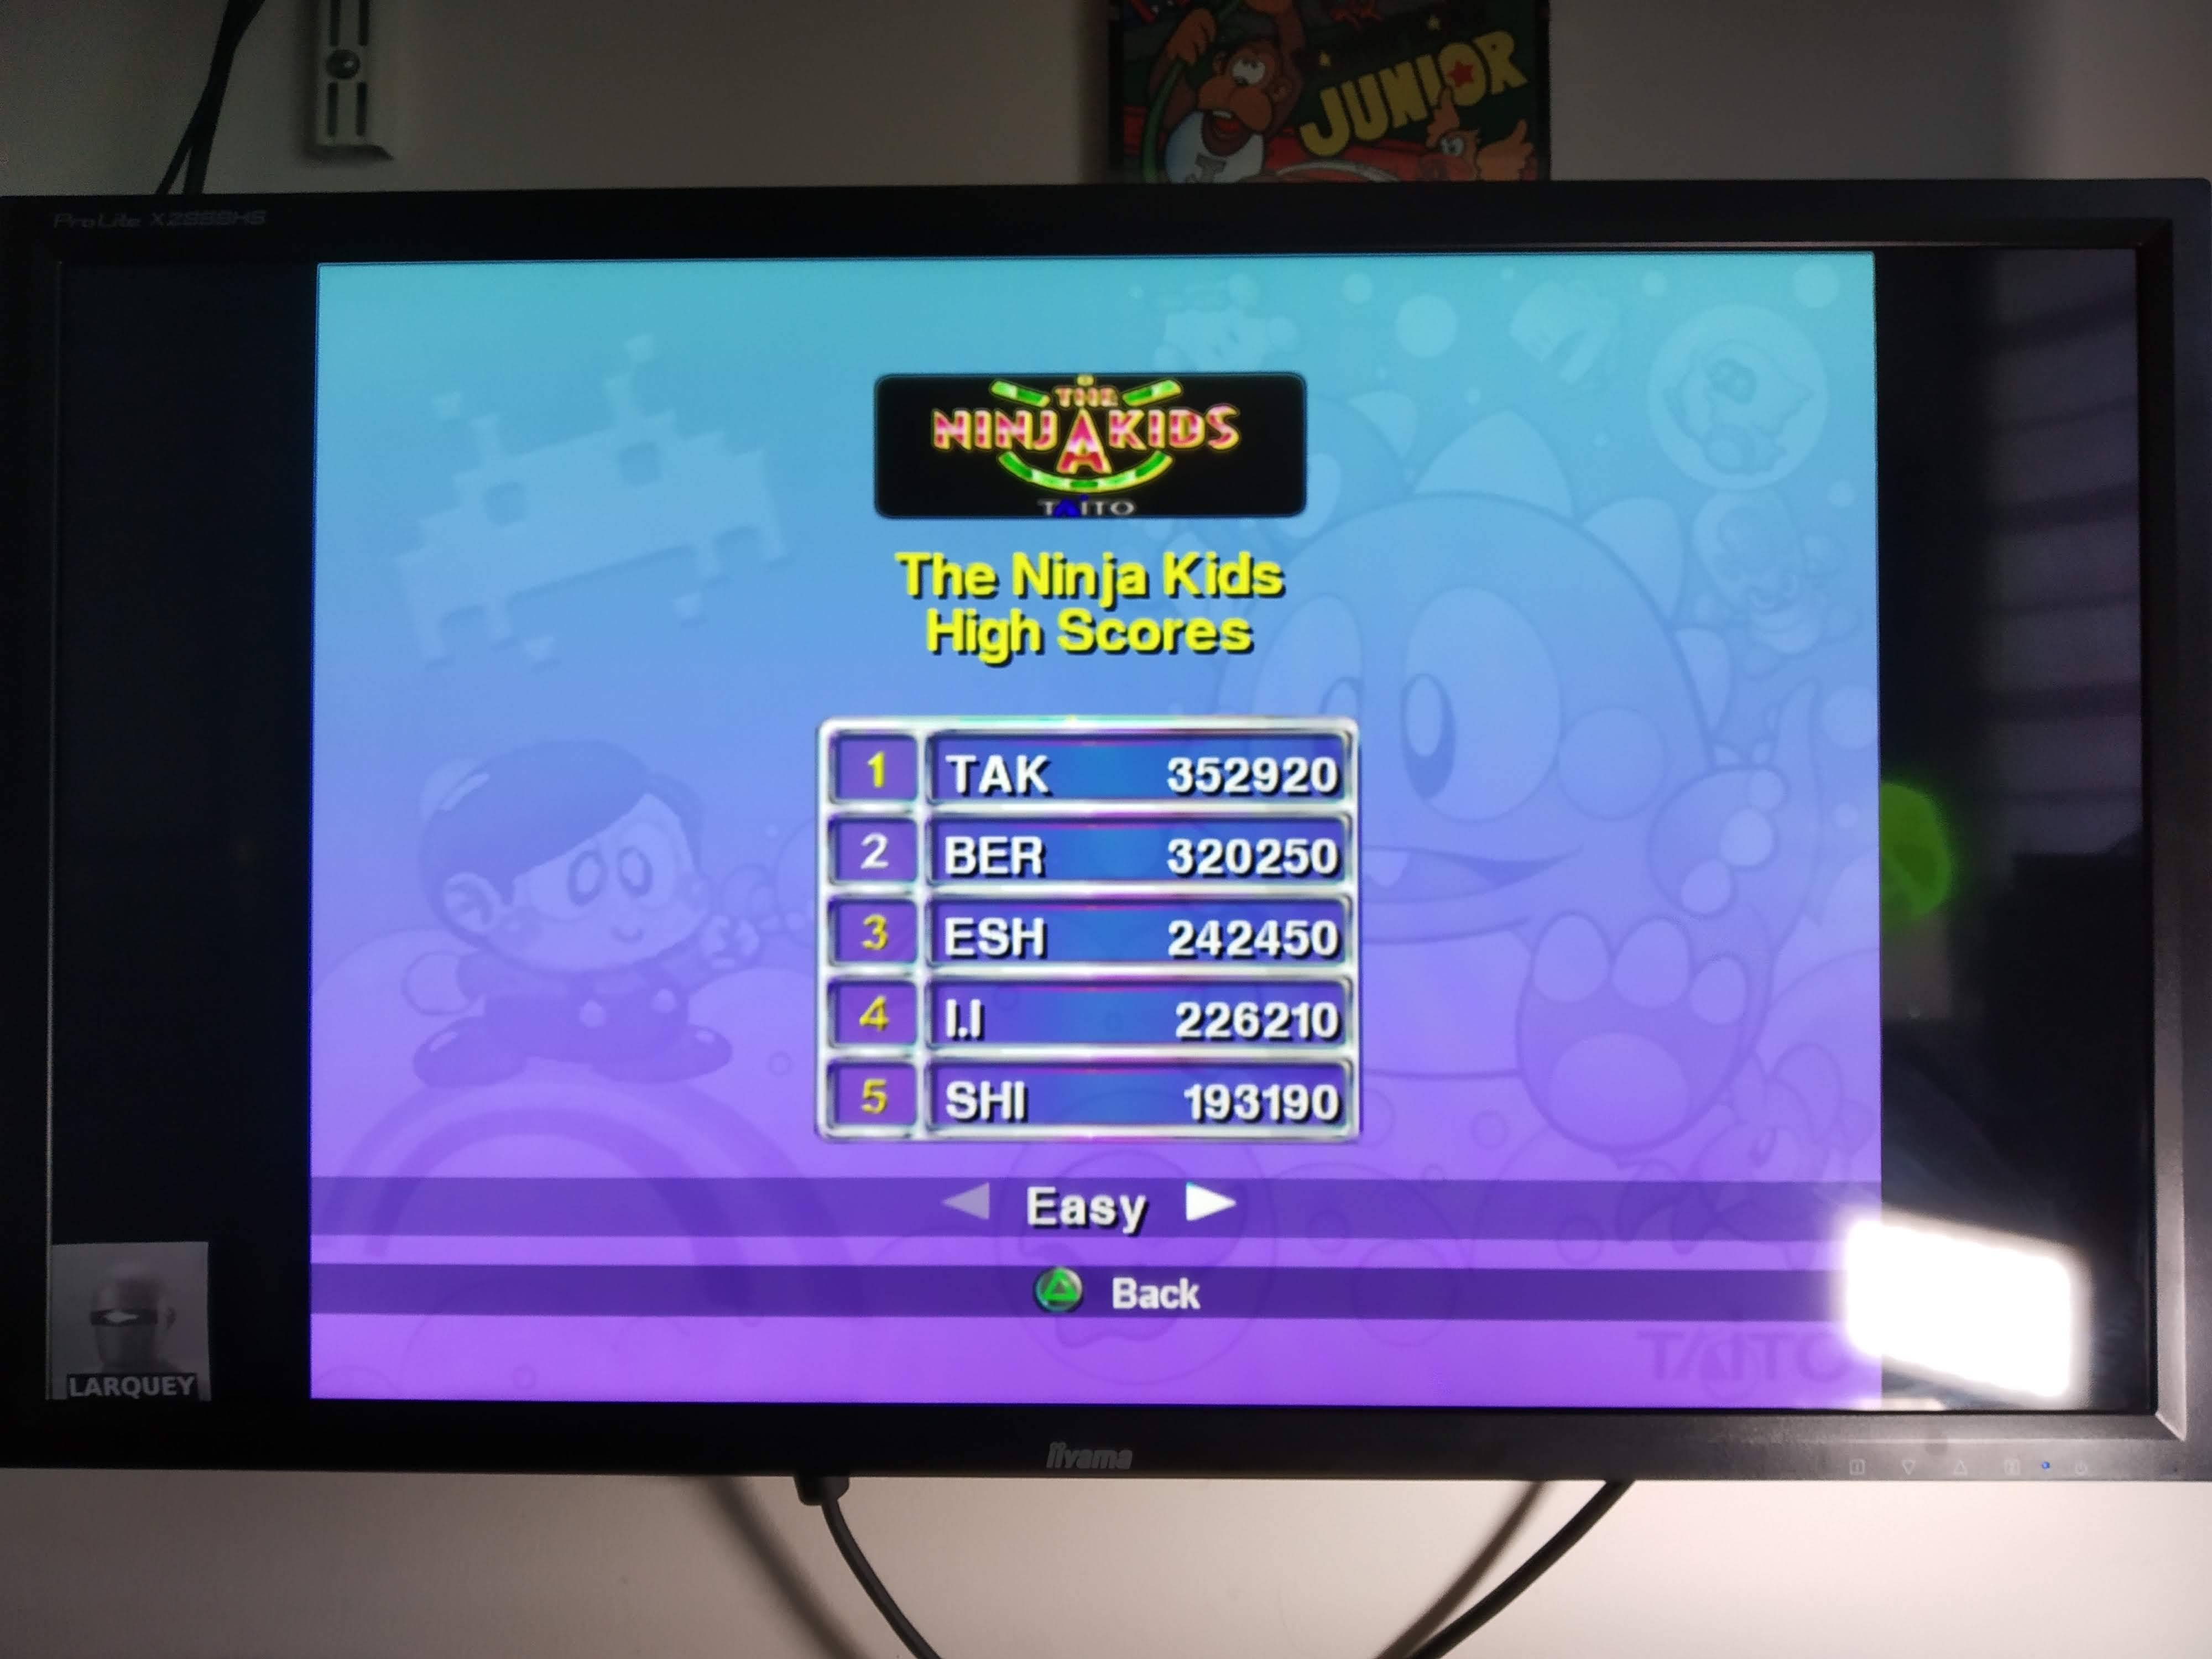 Larquey: Taito Legends: The Ninja Kids [Easy] (Playstation 2 Emulated) 320,250 points on 2020-07-31 08:40:41